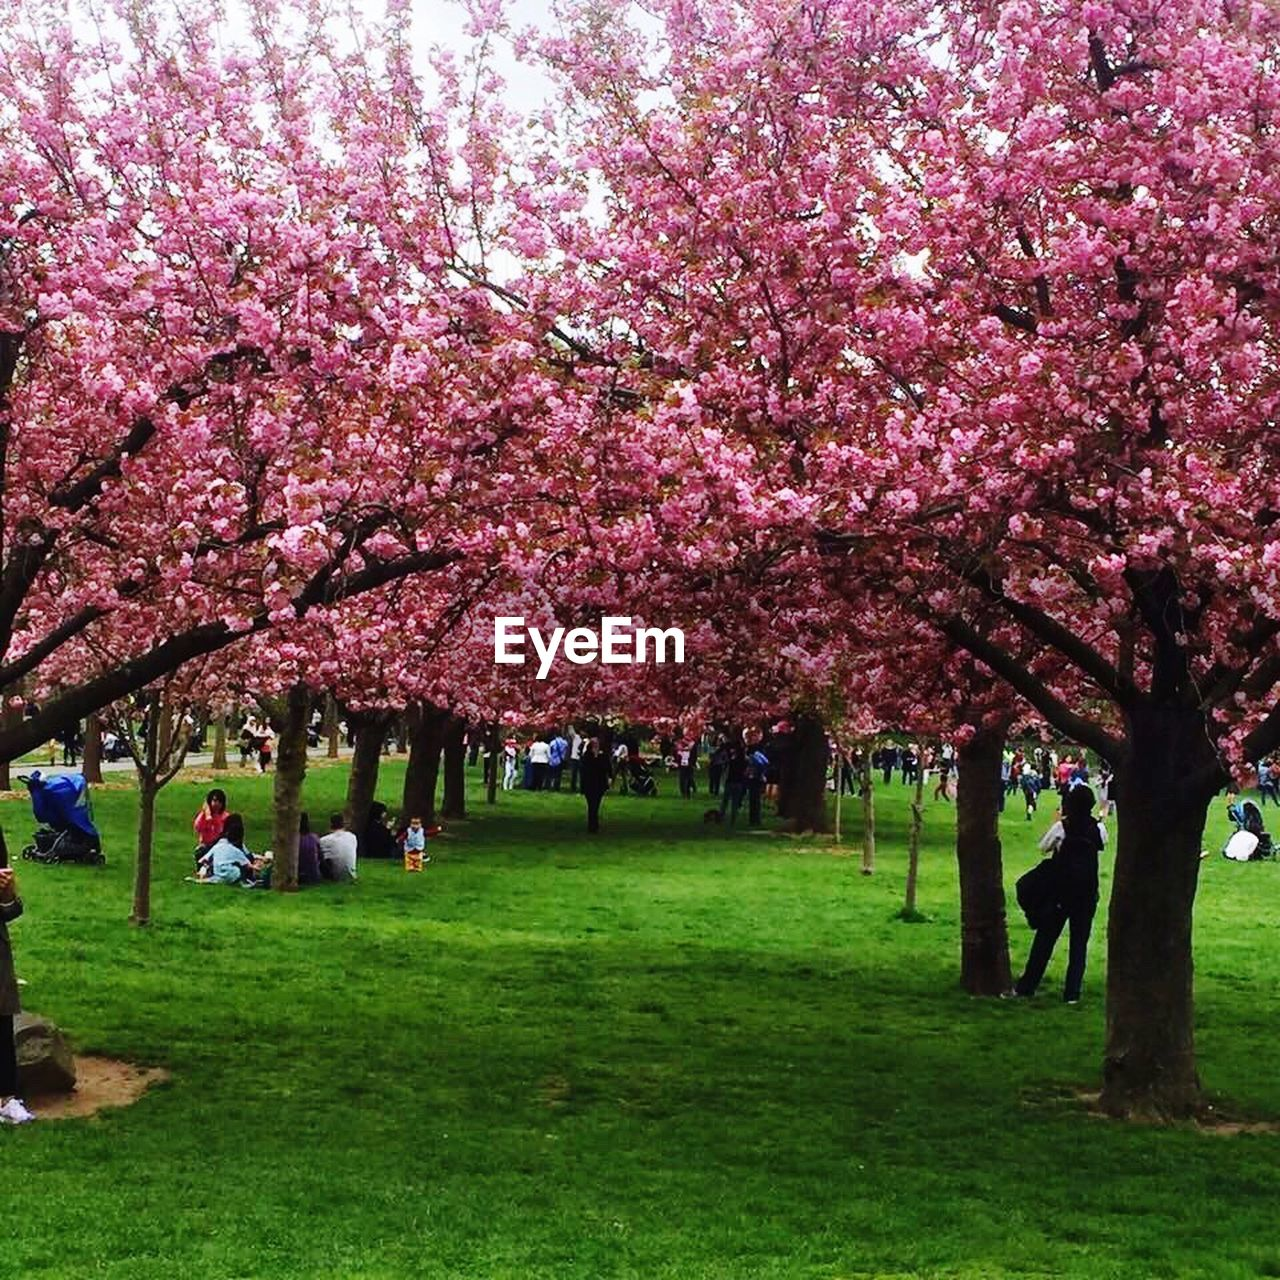 tree, beauty in nature, cherry blossom, cherry tree, blossom, nature, flower, growth, grass, springtime, branch, pink color, real people, freshness, scenics, outdoors, men, fragility, park - man made space, day, tranquility, full length, landscape, large group of people, women, sky, people